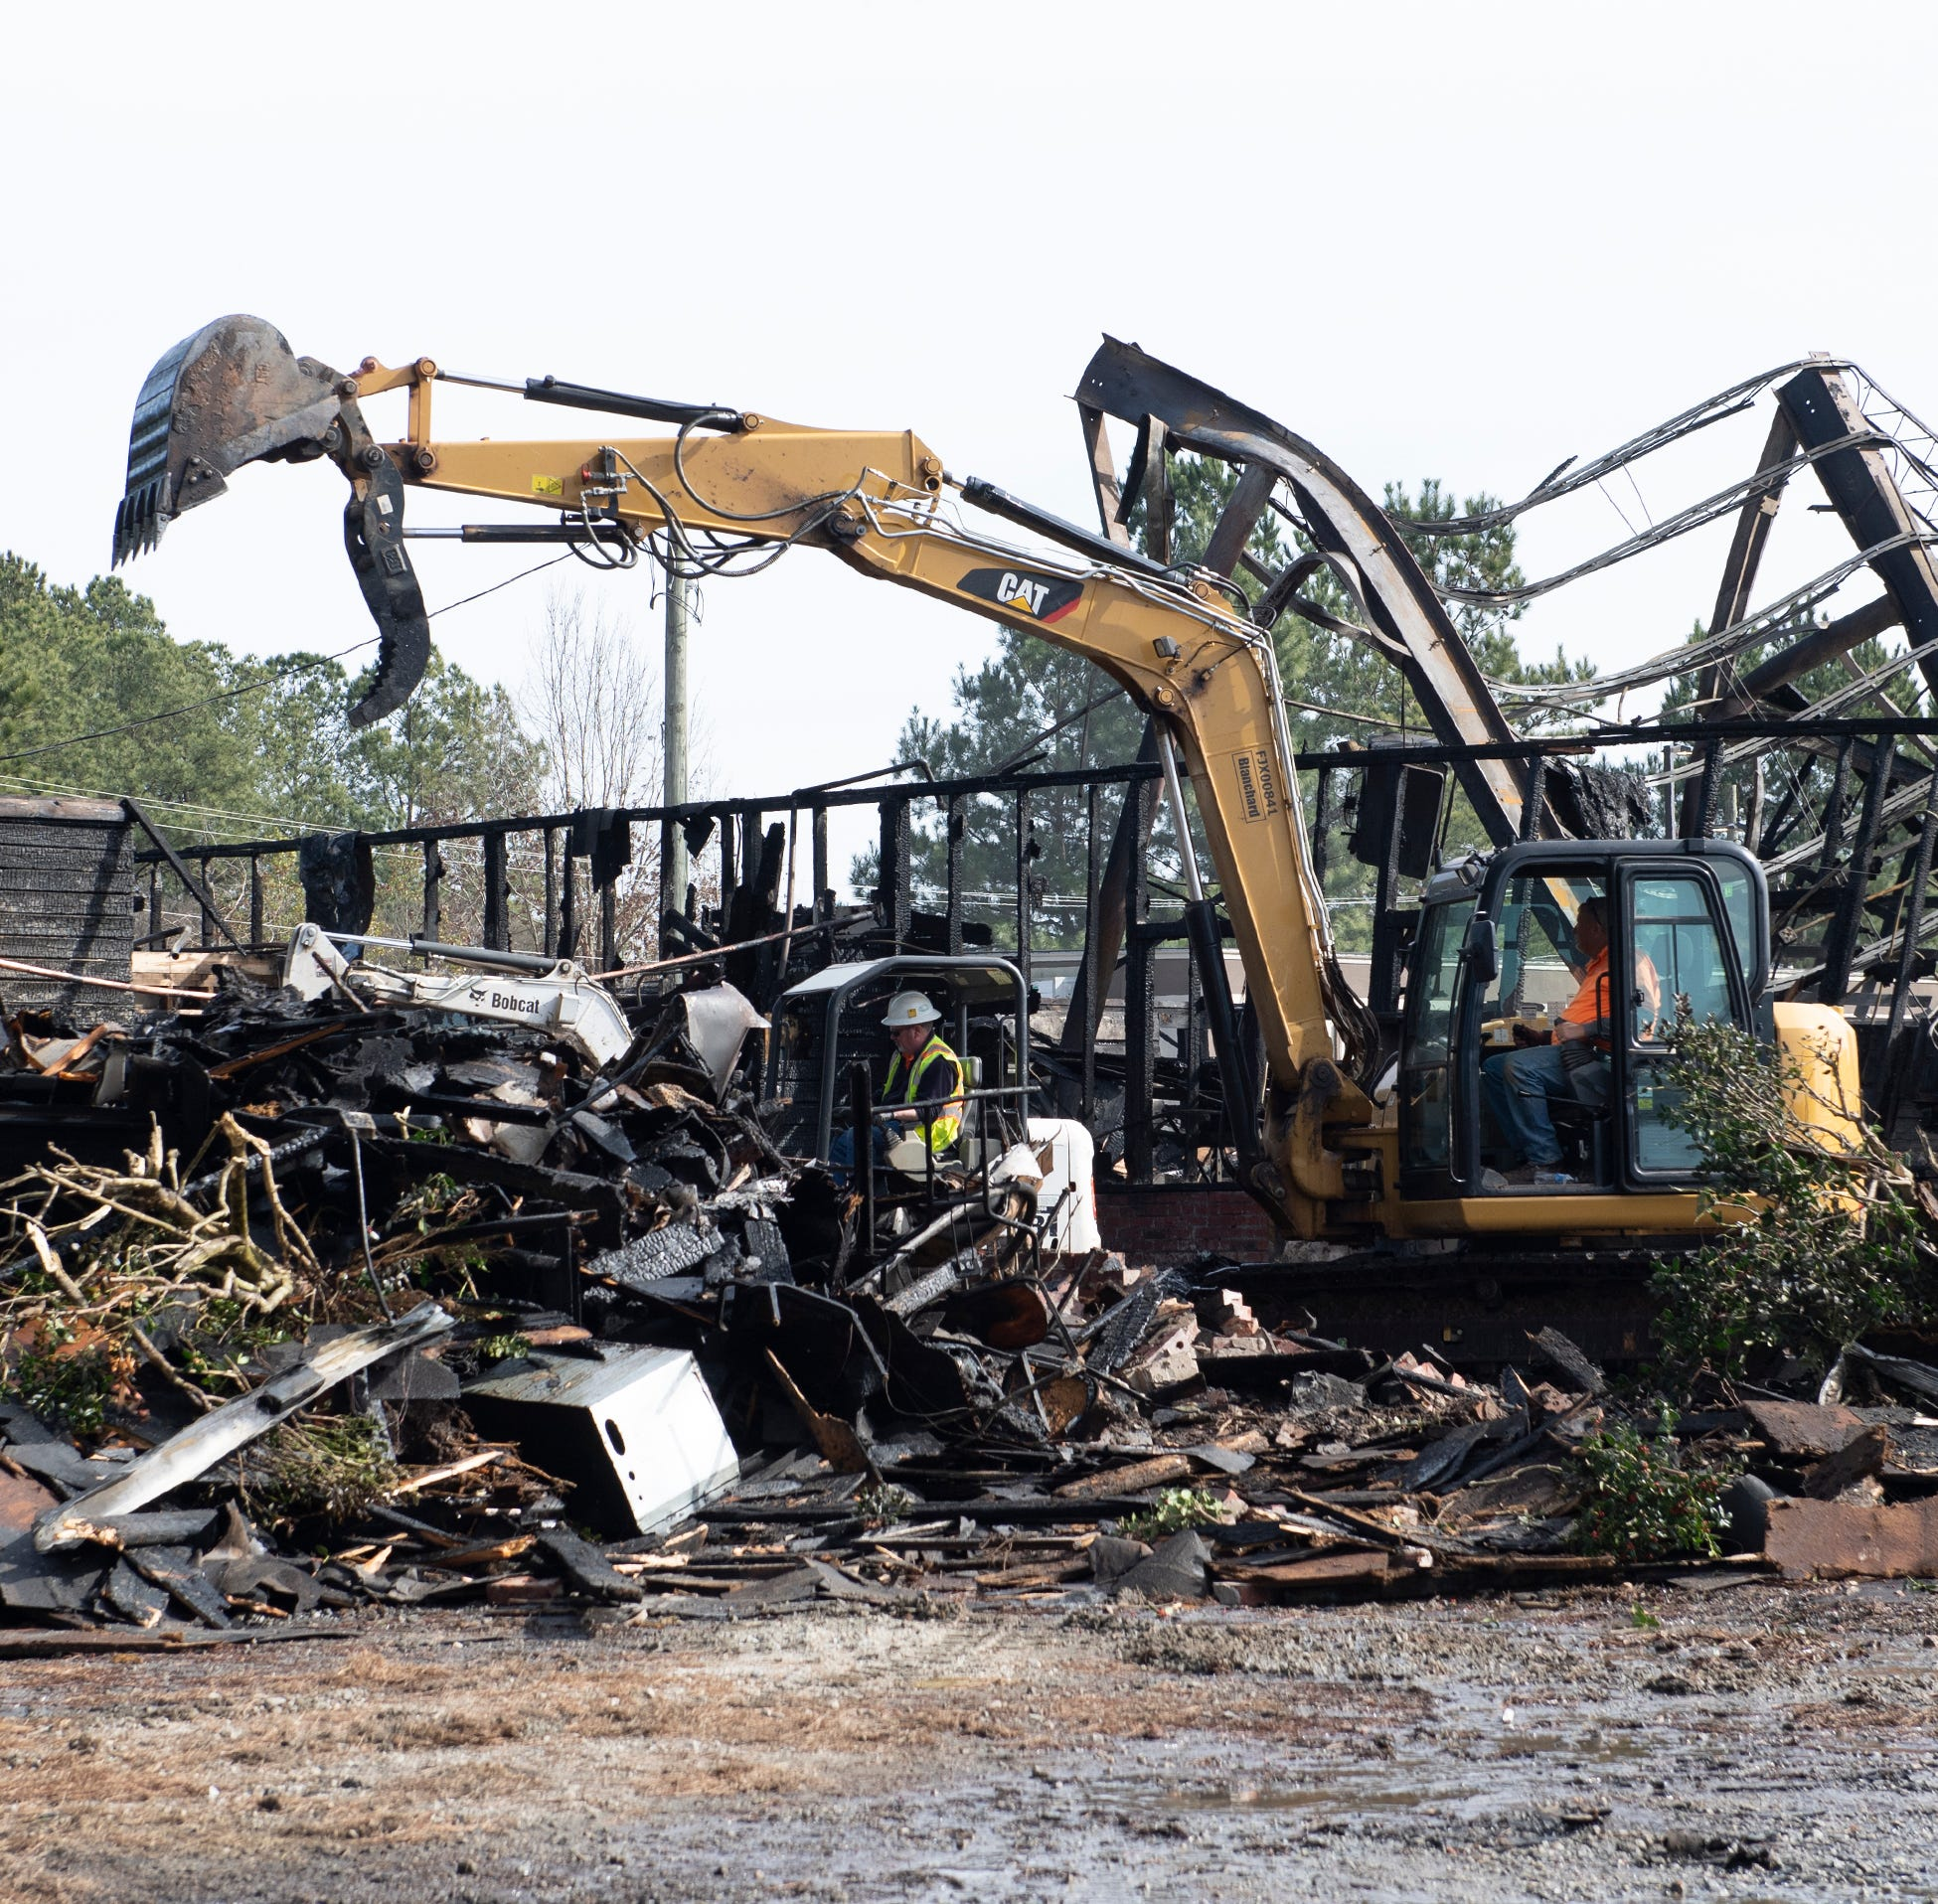 Cause of the fire at Clemson's Y Barn was likely electrical. It left $780,000 in damages